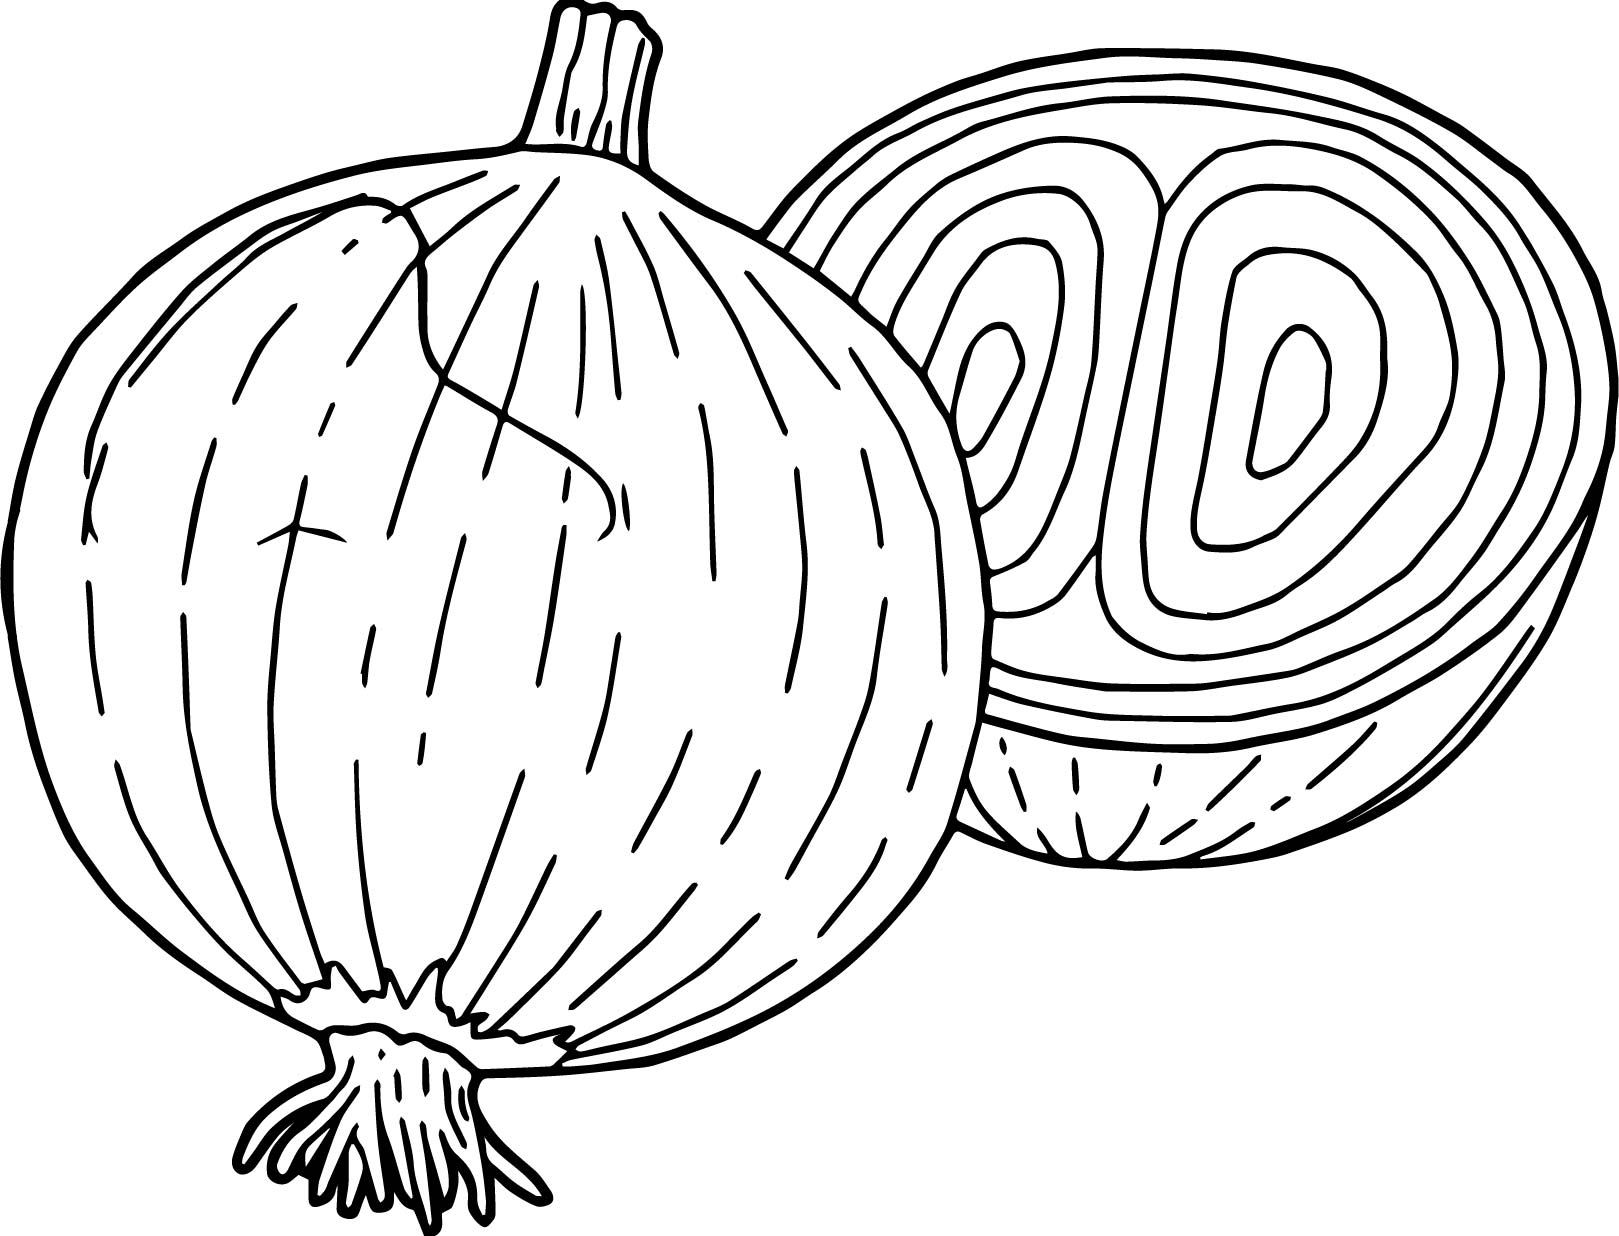 Onion Drawing At Getdrawings